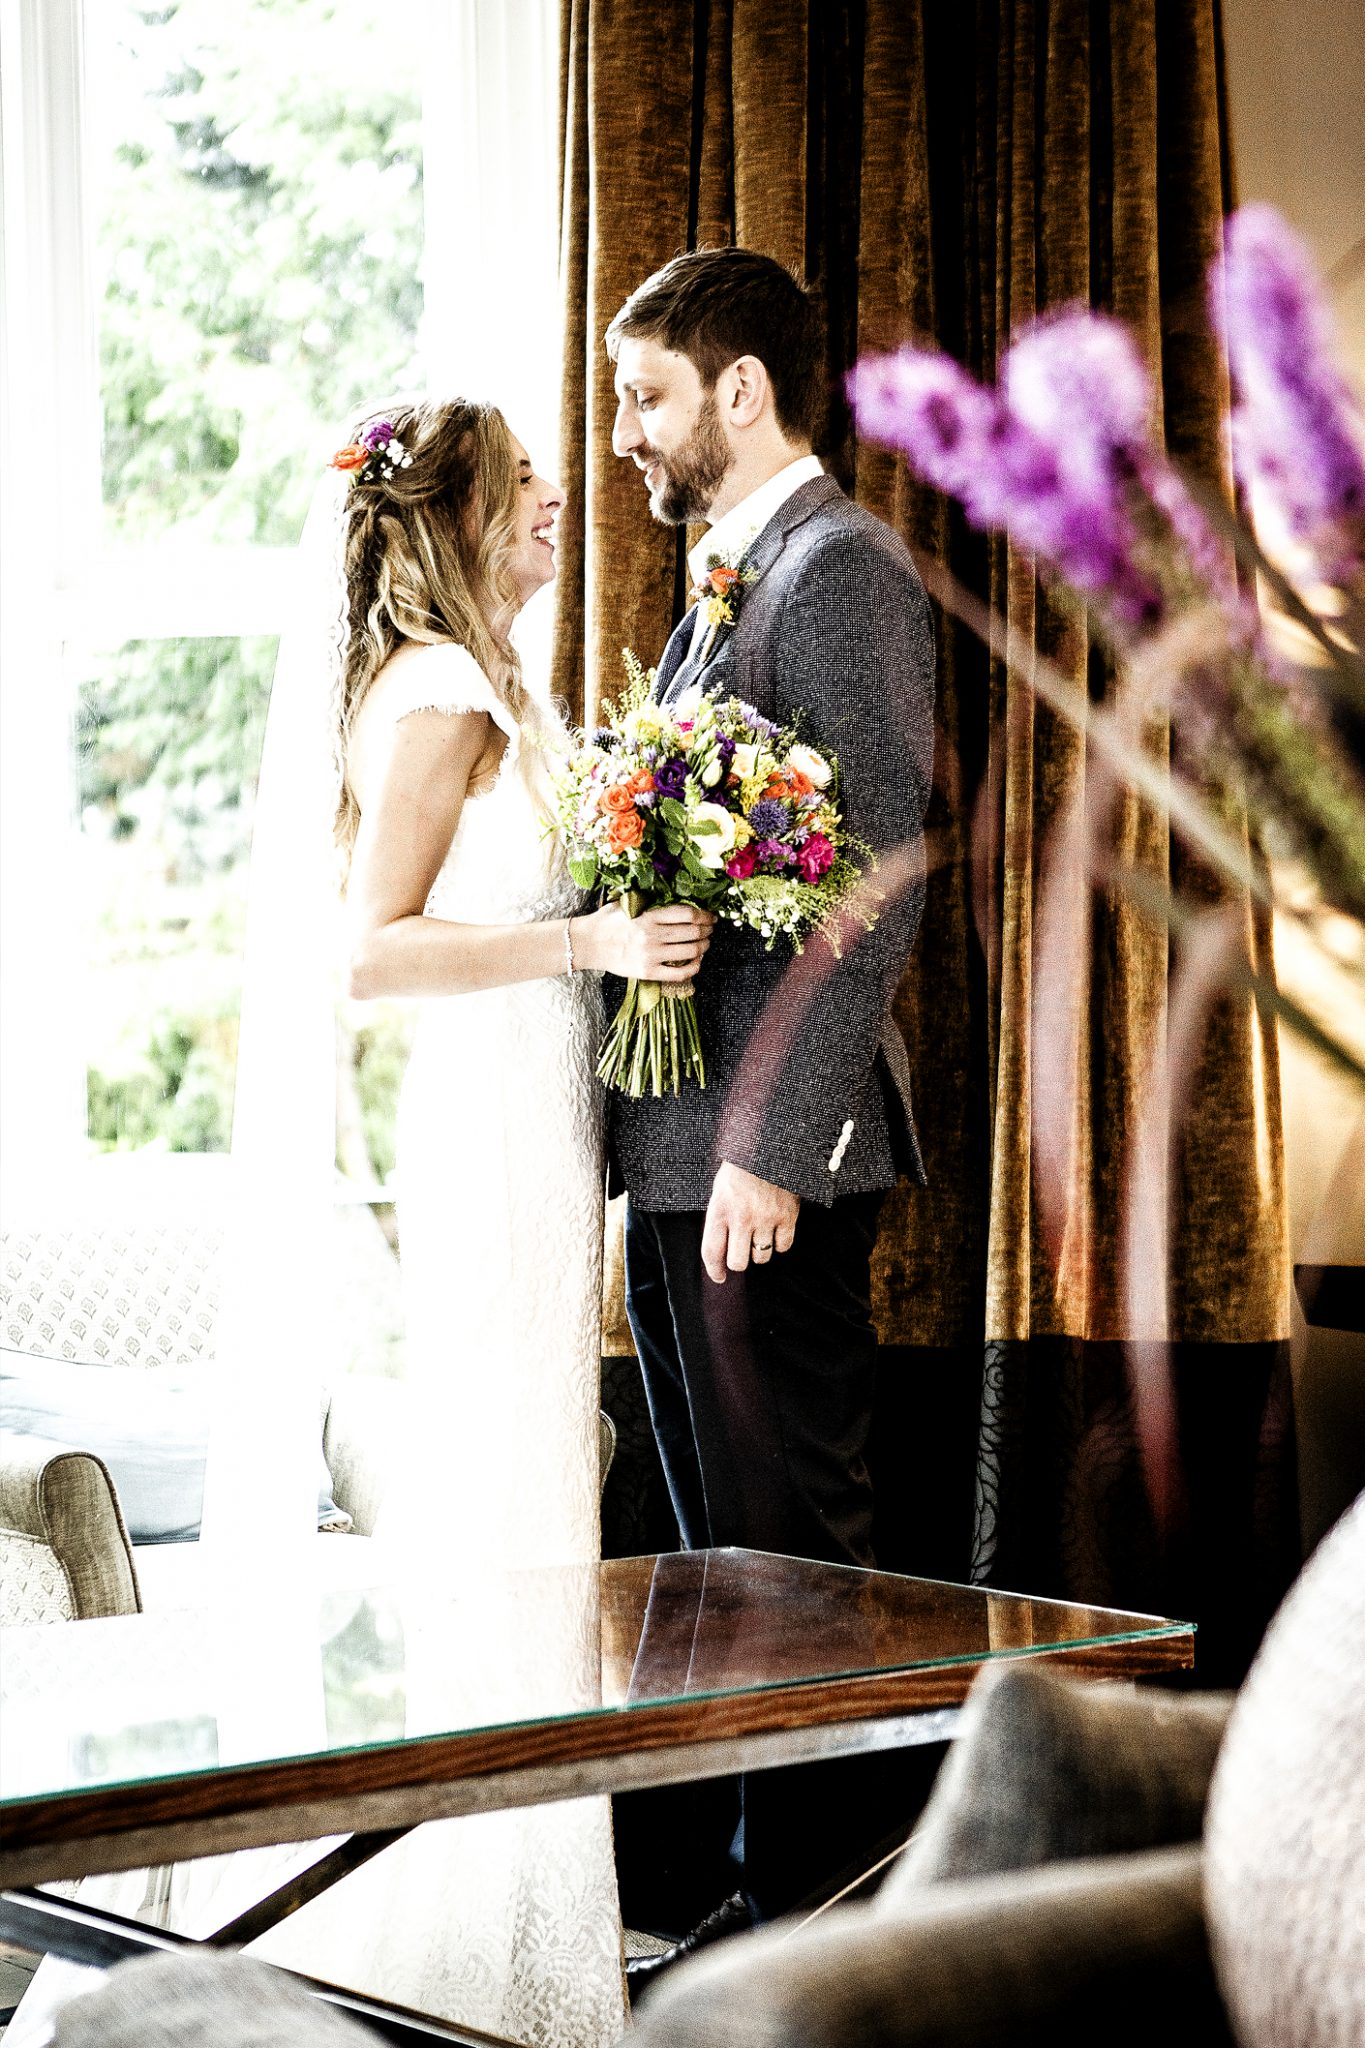 wedding-photography-of-the-bride-and-groom-at-didsbury-house-hotel-manchester